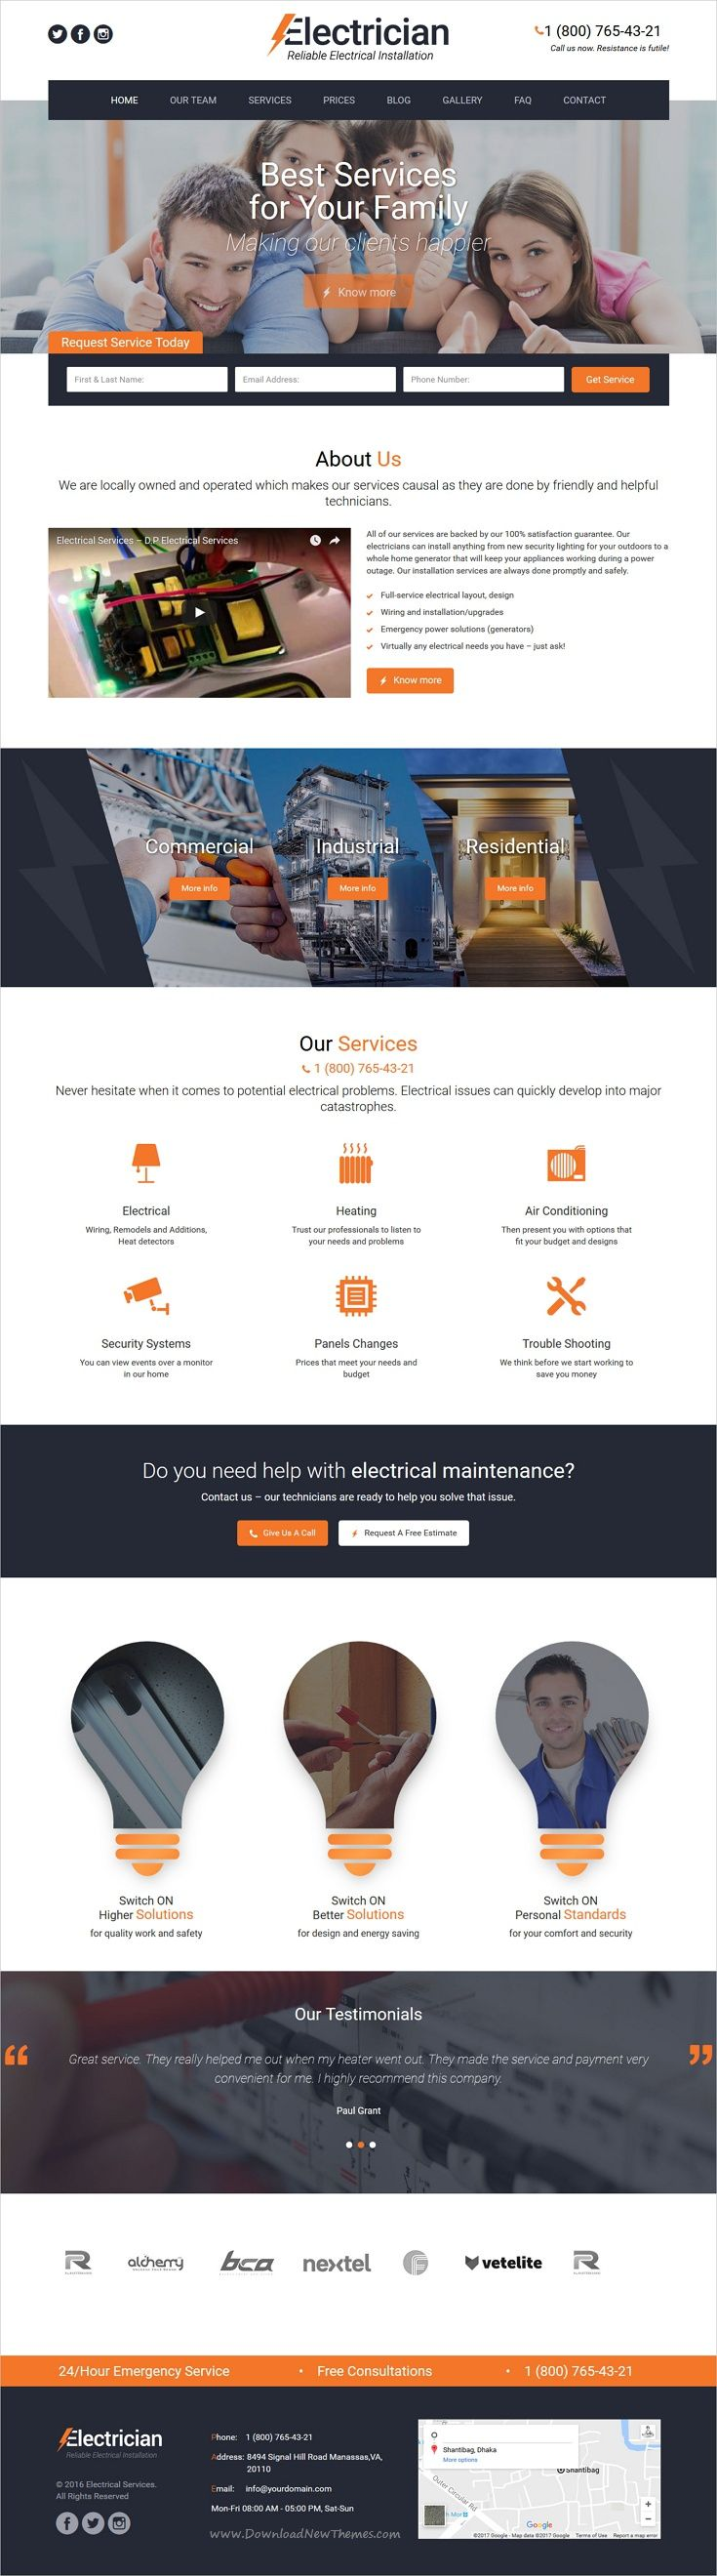 Electrician is a modern, clean and professional #WordPress theme for #webdev #electricity services websites download now➩ https://themeforest.net/item/electrician-electricity-services-wordpress-theme/19212980?ref=Datasata